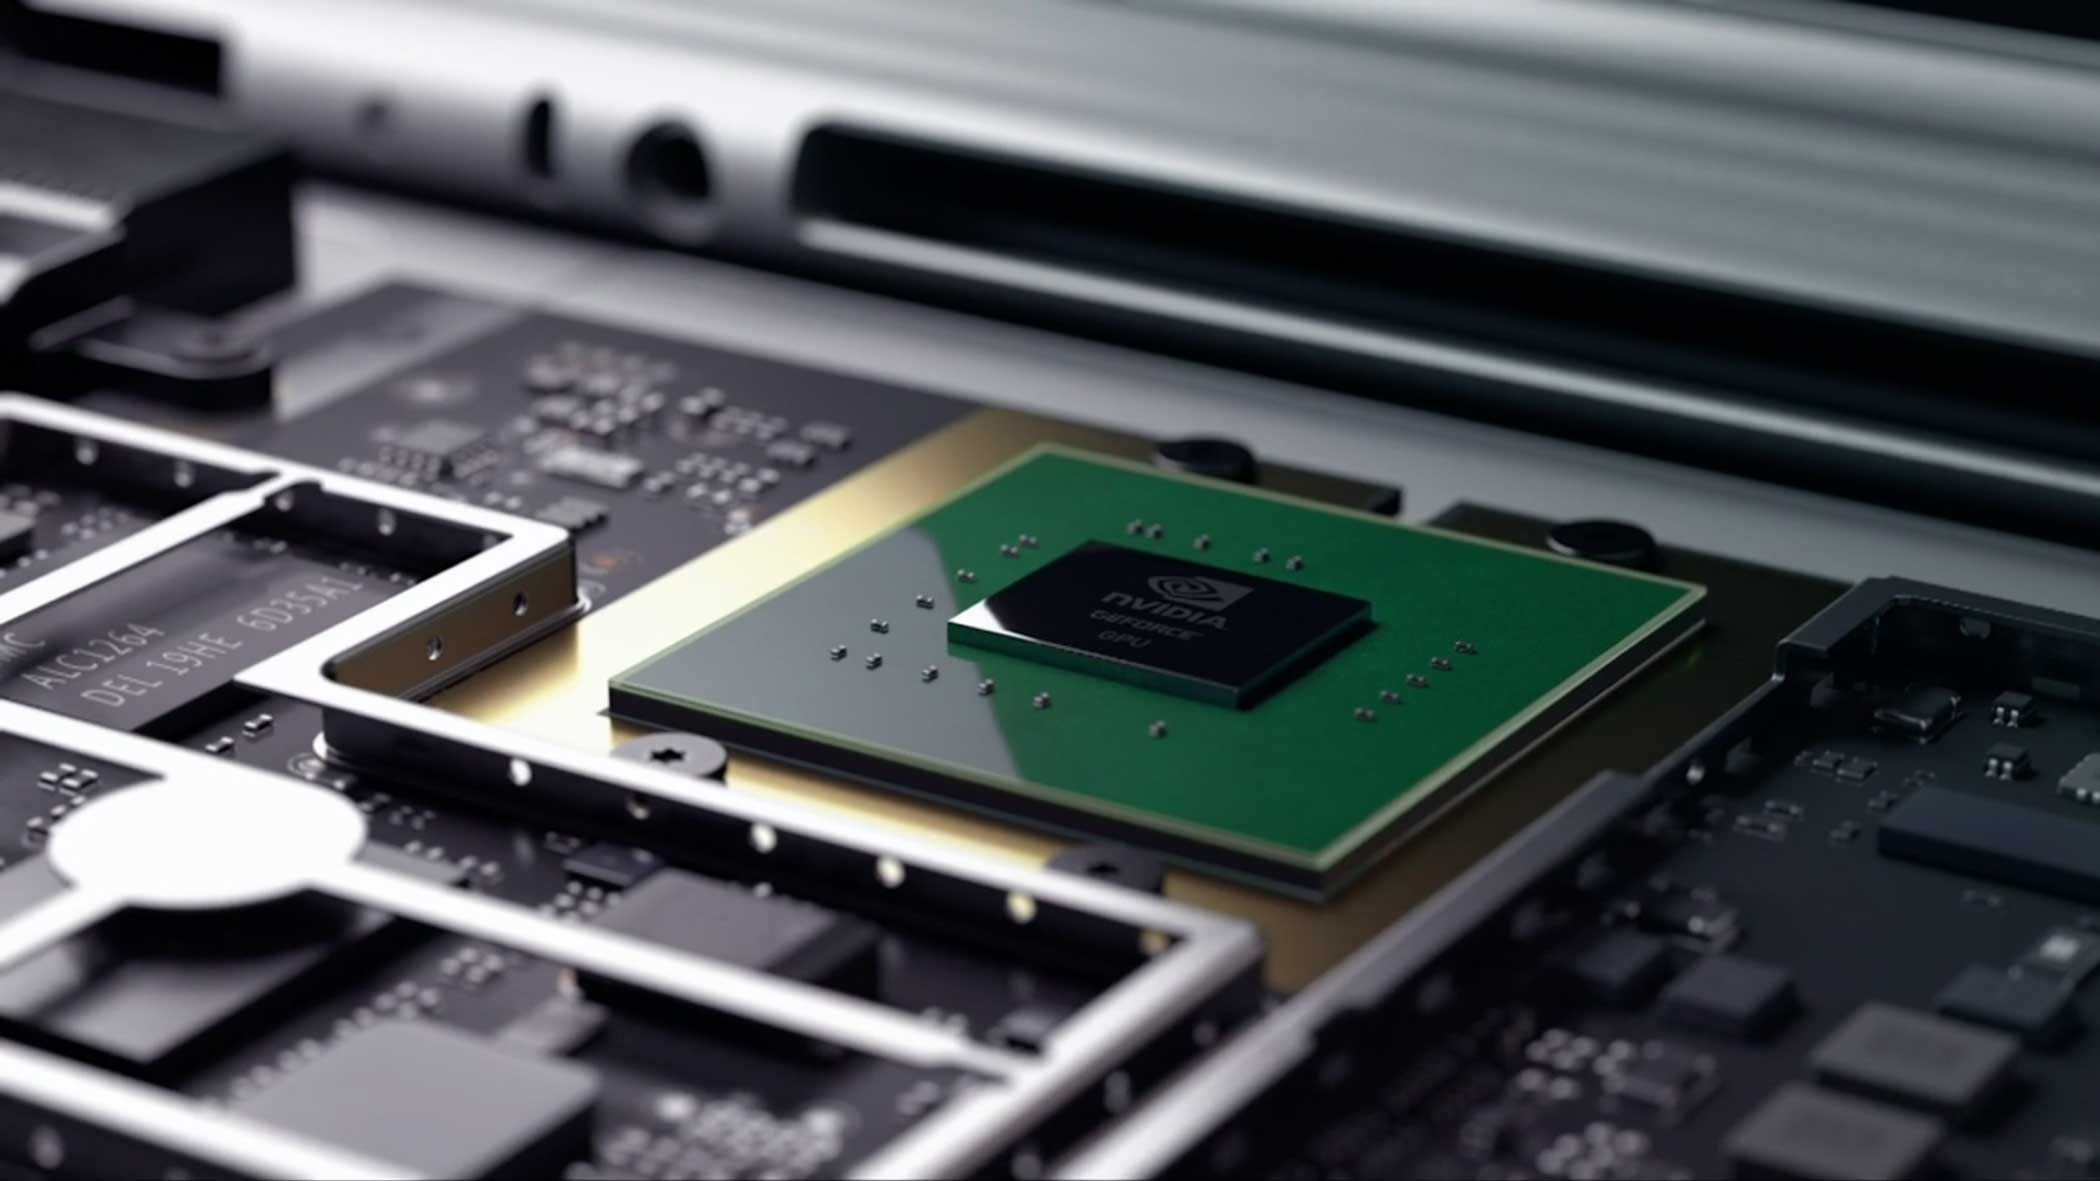 It's 6th Generation Intel Core processor makes it reportedly 50% more powerful than Apple's Macbook Air.